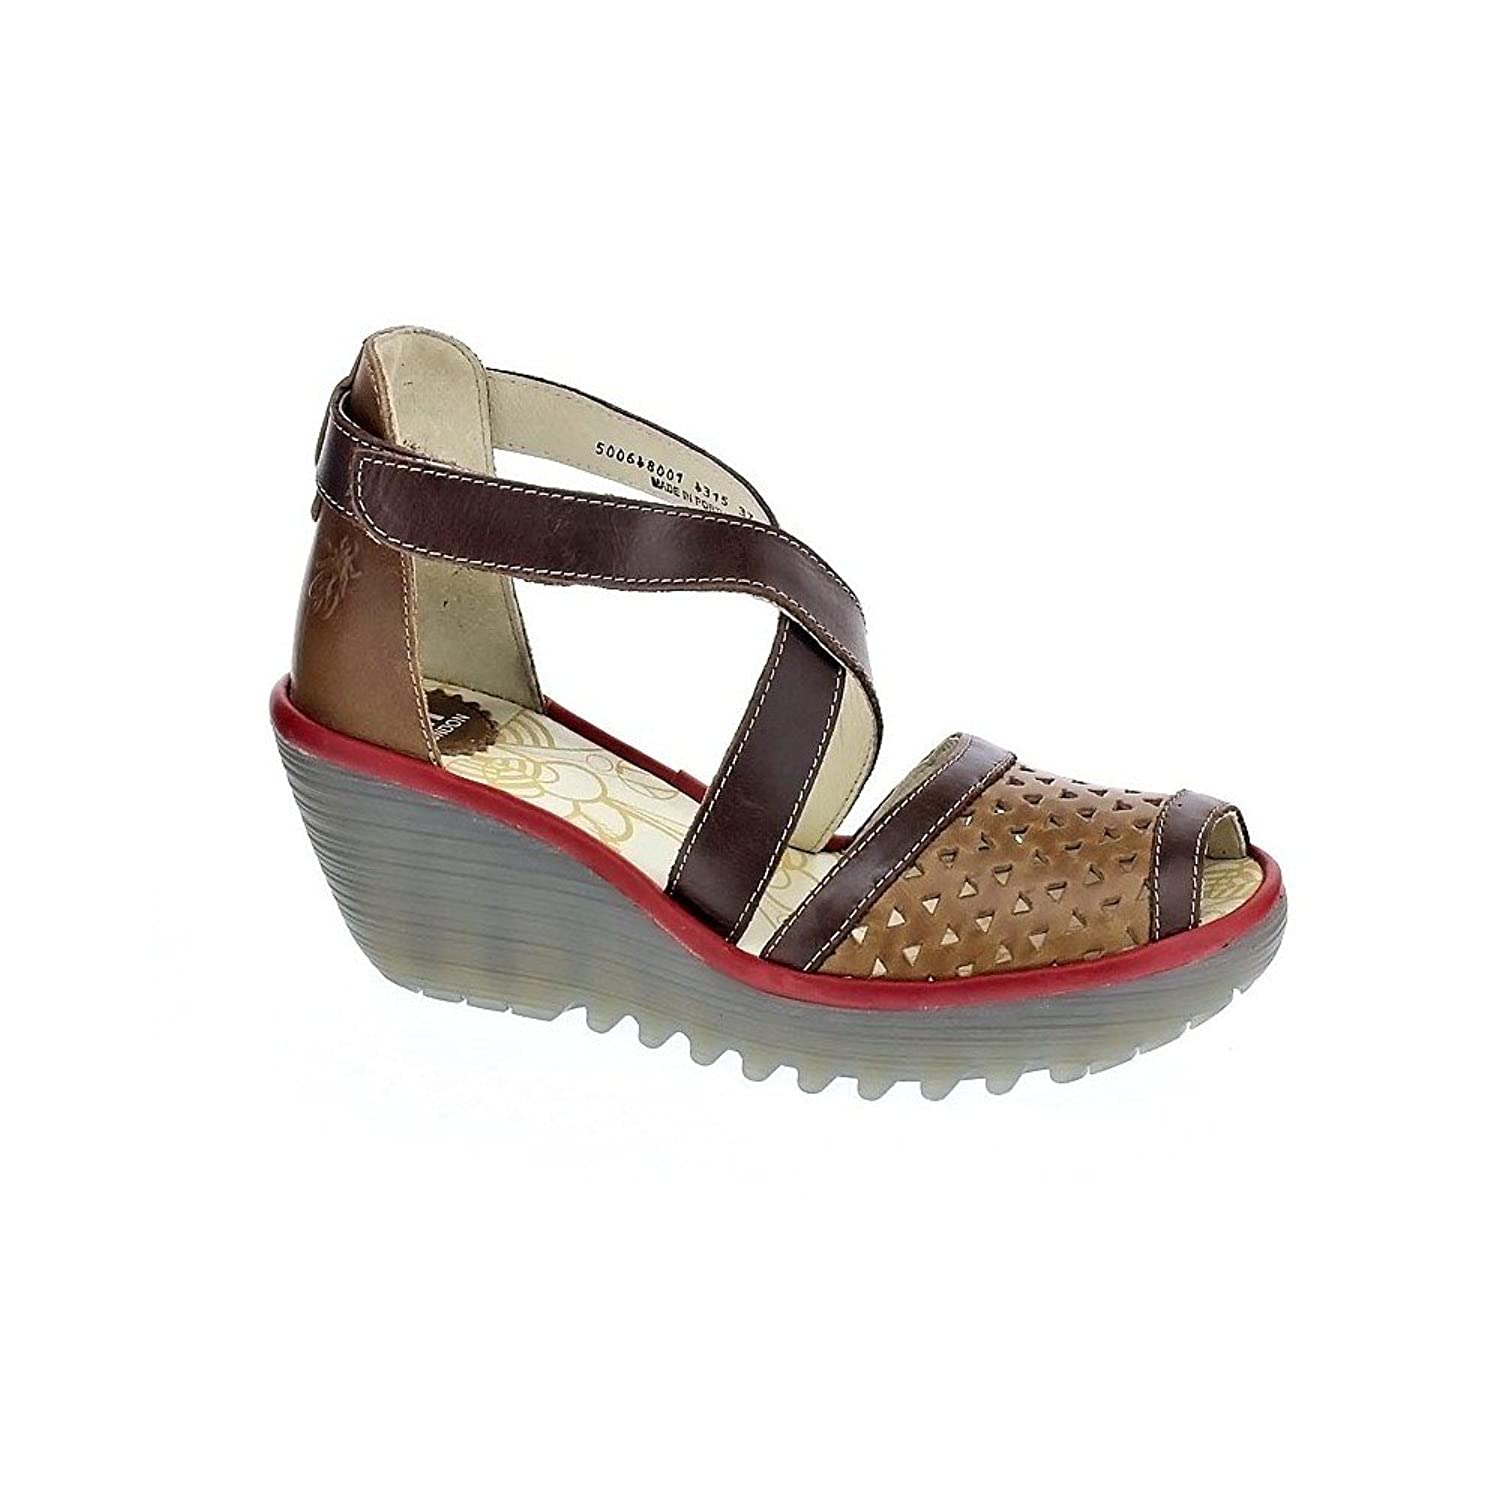 Fly London Womens Ynes Wedge B01FKMHXBQ 38 M EU